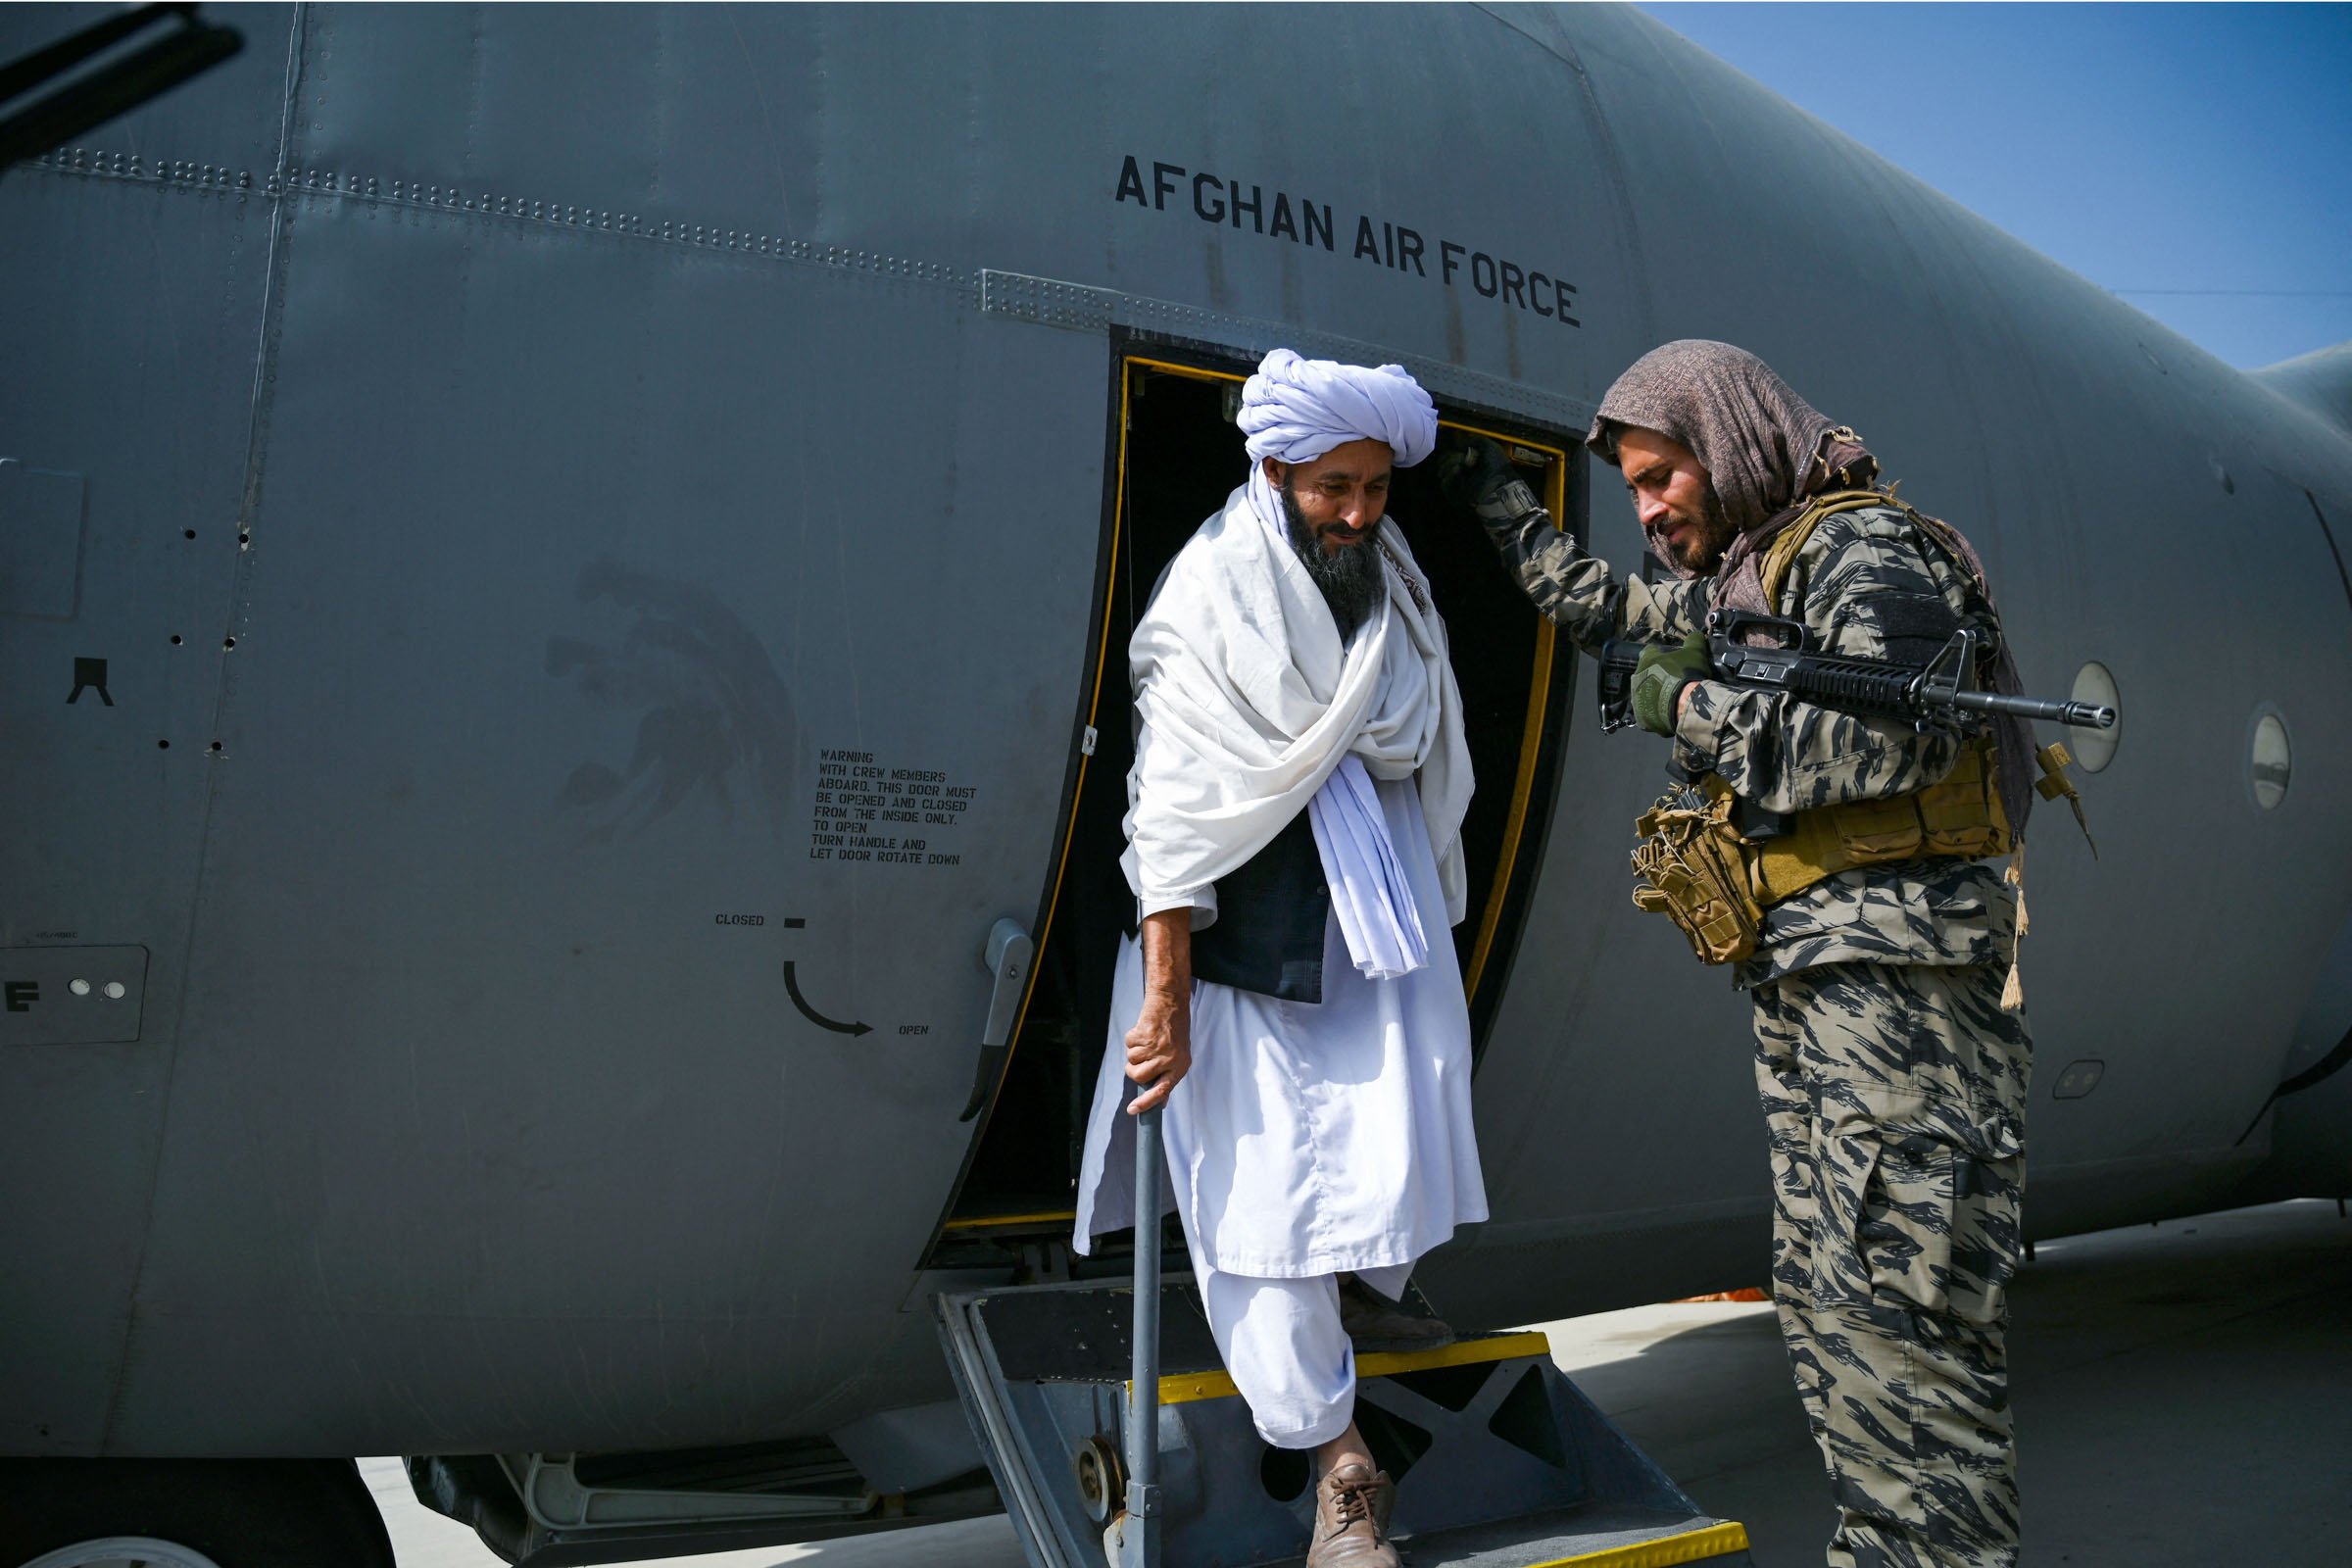 A member of the Taliban walks out of an Afghan Air Force aircraft at Kabul airport on Tuesday, August 31.